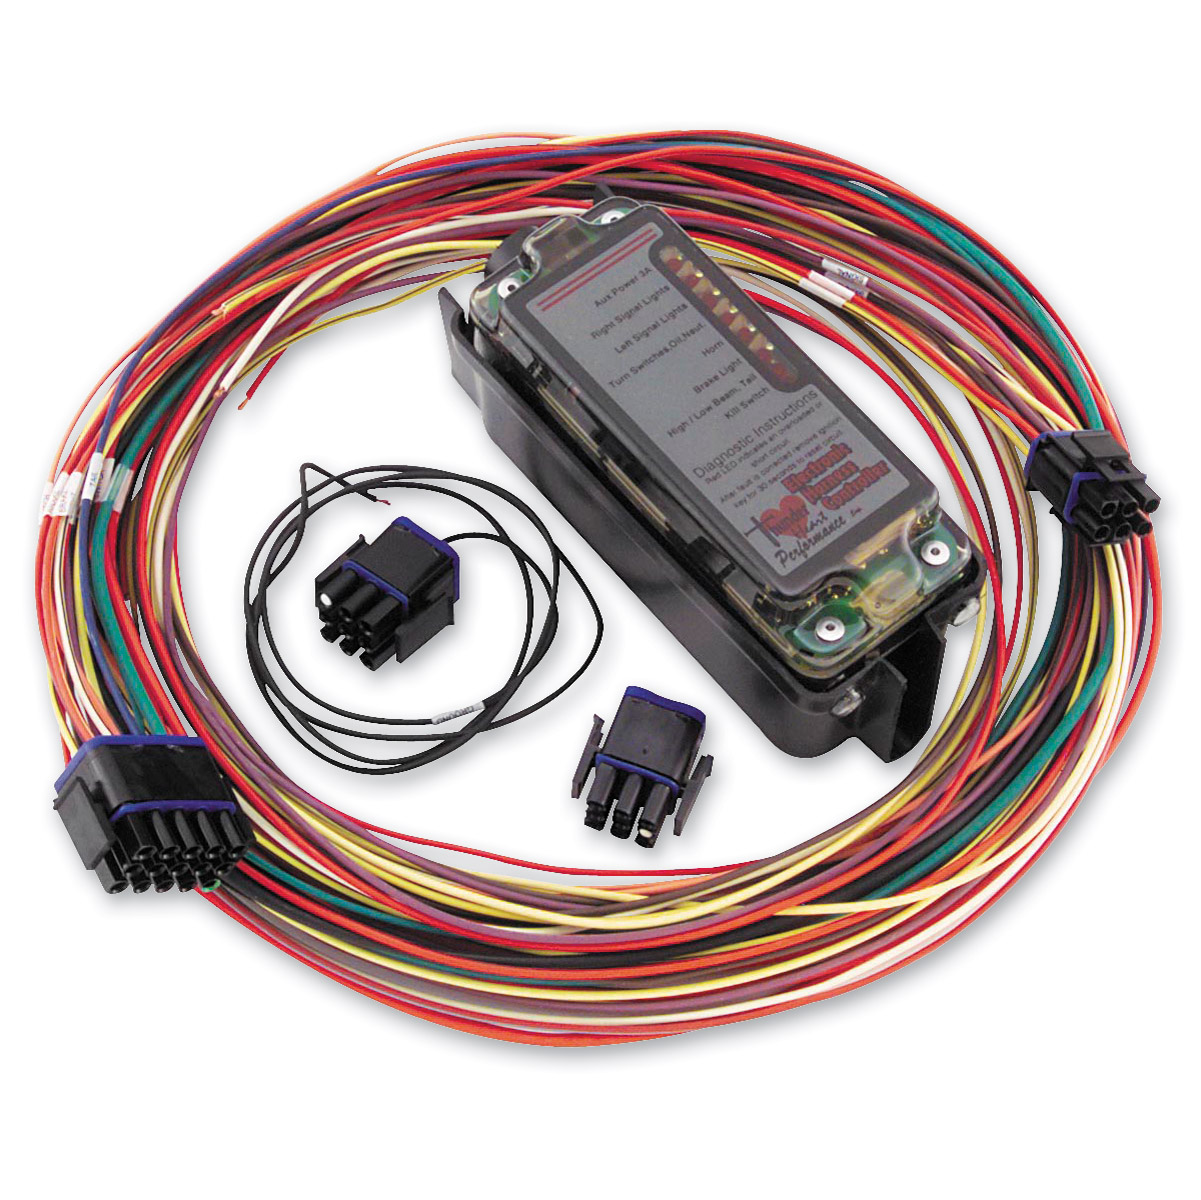 hight resolution of motorcycle electronic harness controller installation wiring diagrams second